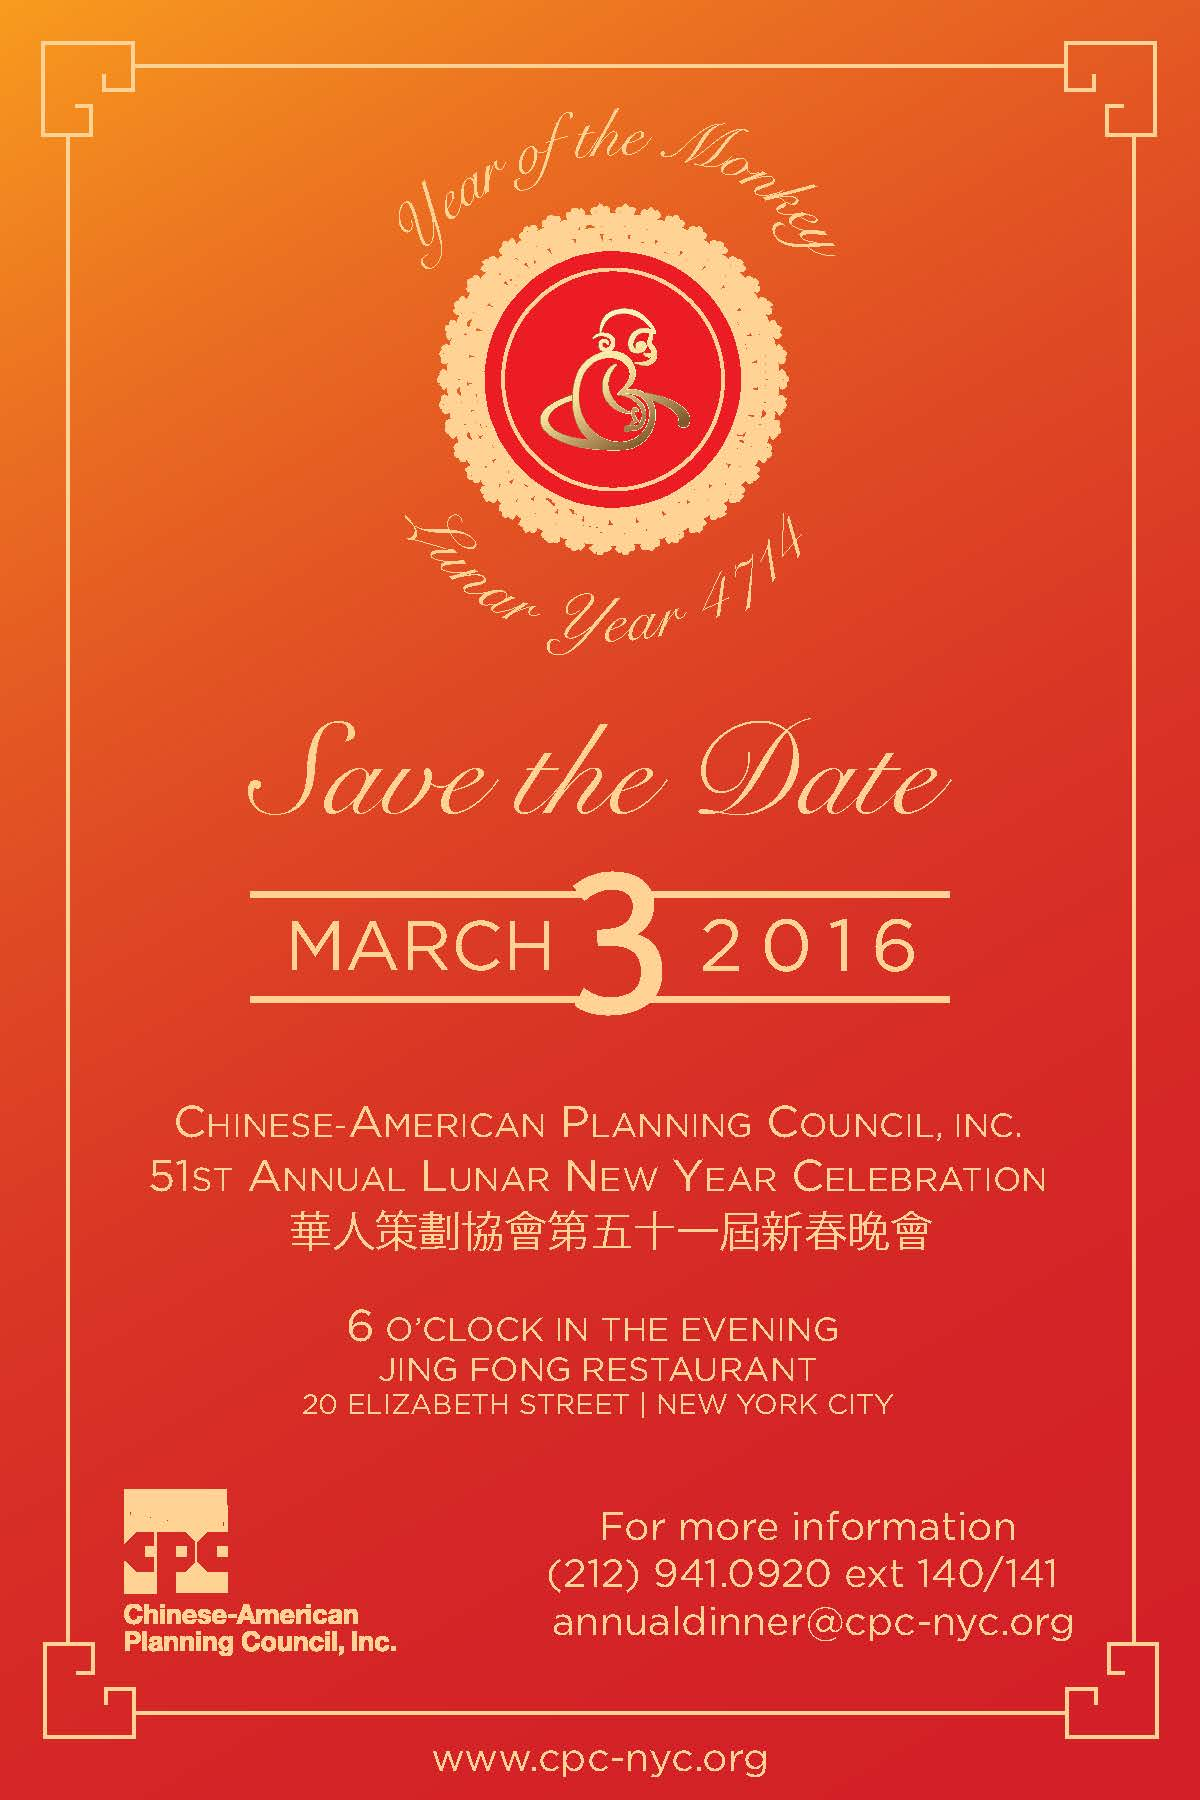 the chinese american planning council inc cpc we would like to invite you to join cpcs 51st annual lunar new year celebration fundraising dinner on